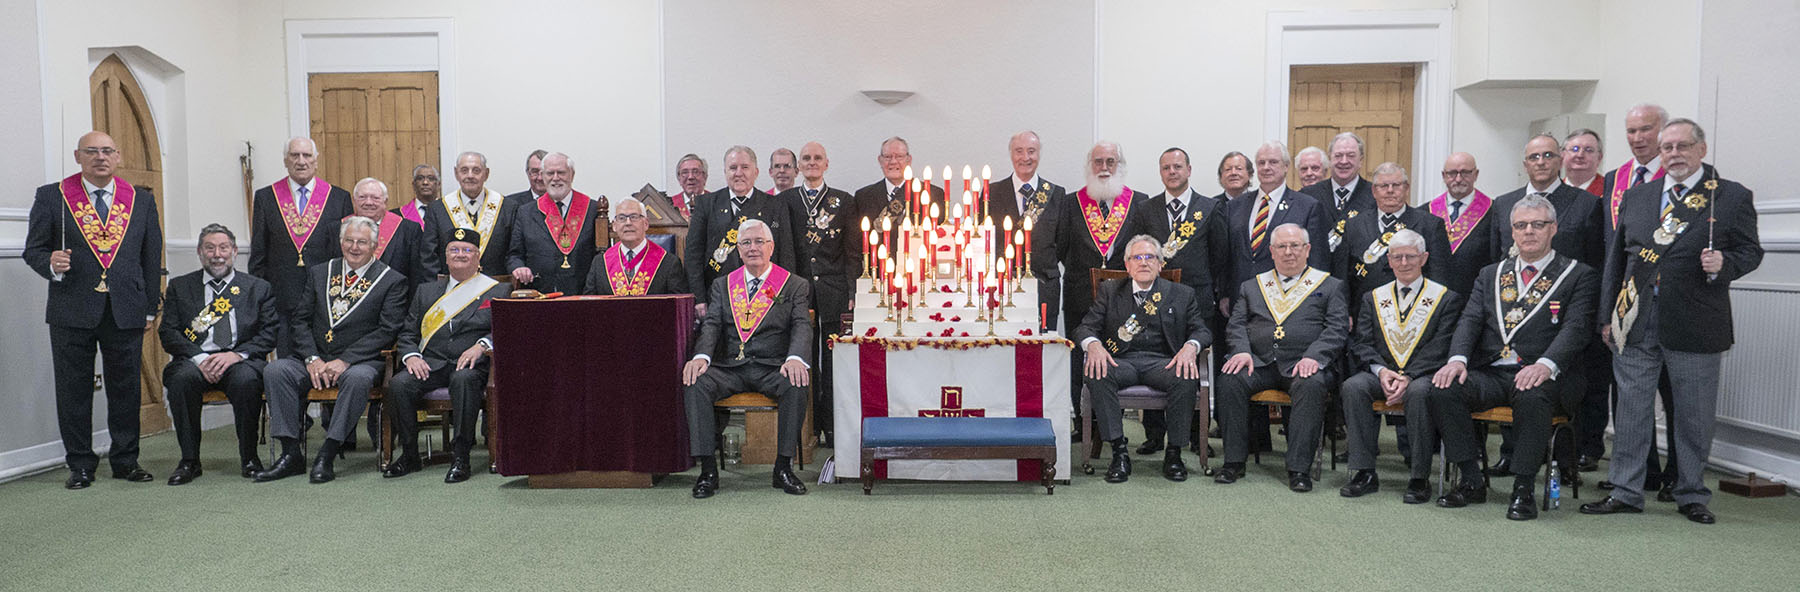 Our Provincial Grand Master joins Rose Croix